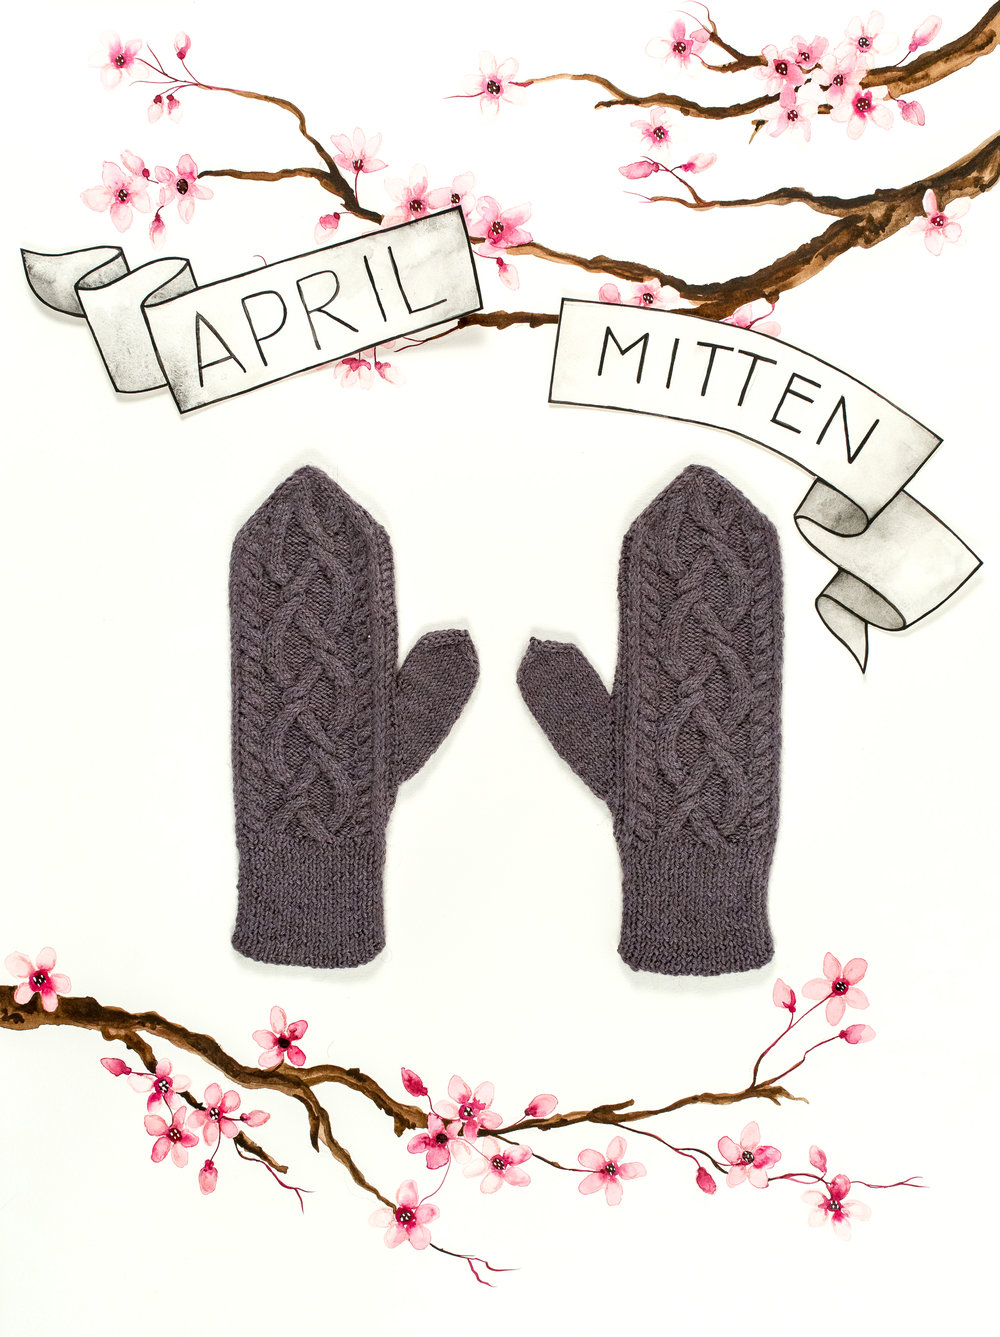 Year of Mittens April Mitten